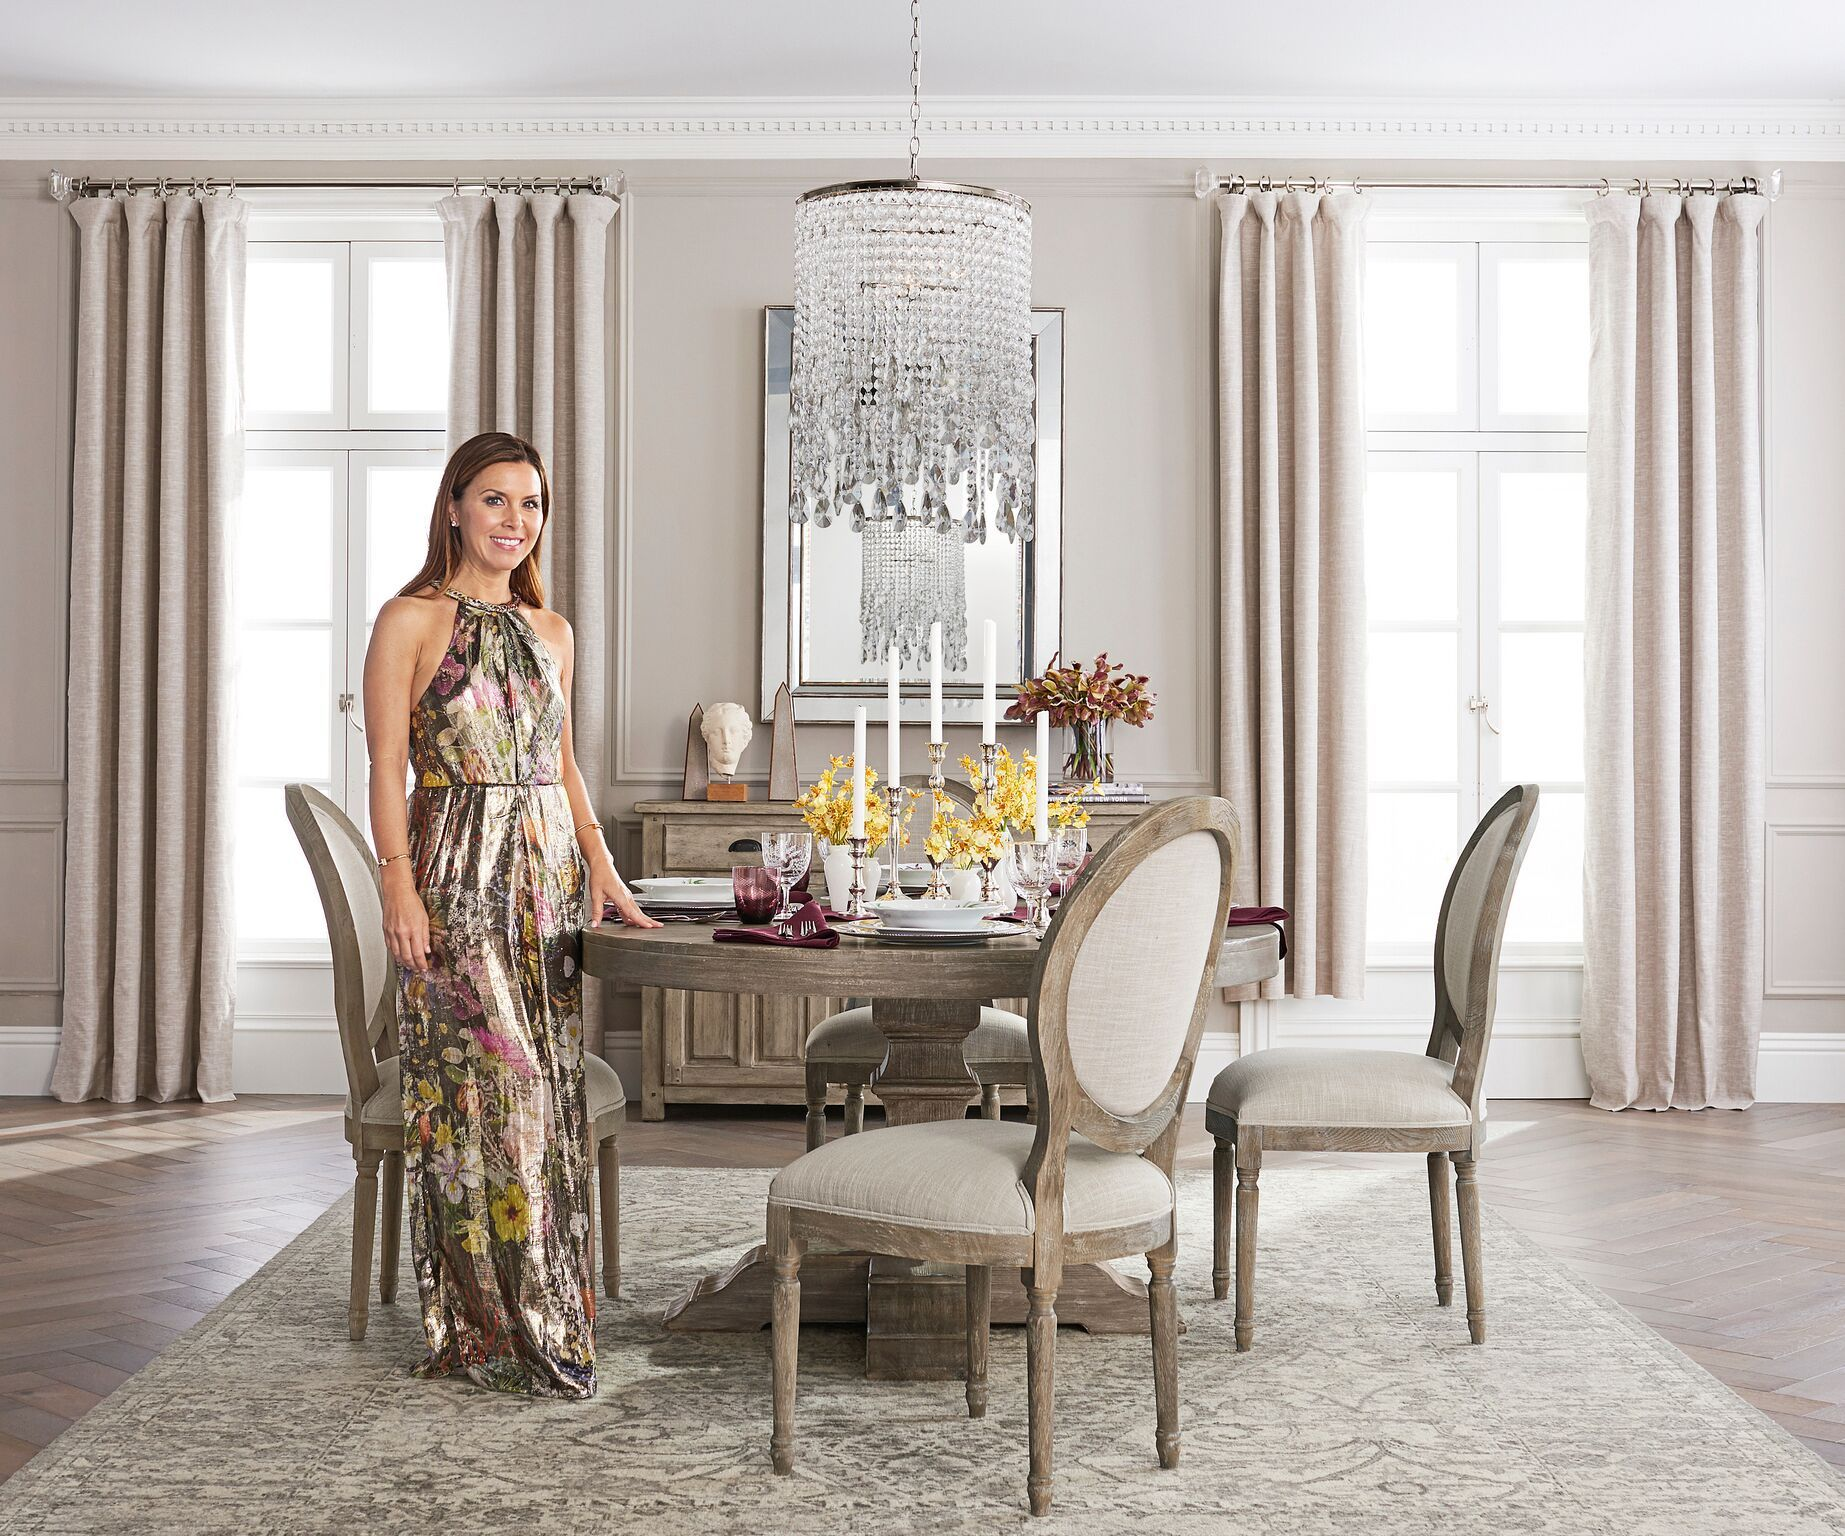 Celebrity Bridal Designer Monique Lhuillier Just Launched a Gorgeous Pottery Barn Collection  sc 1 st  Elle Decor & Pottery Barn Debuts Monique Lhuillier Home Collection - Monique ...